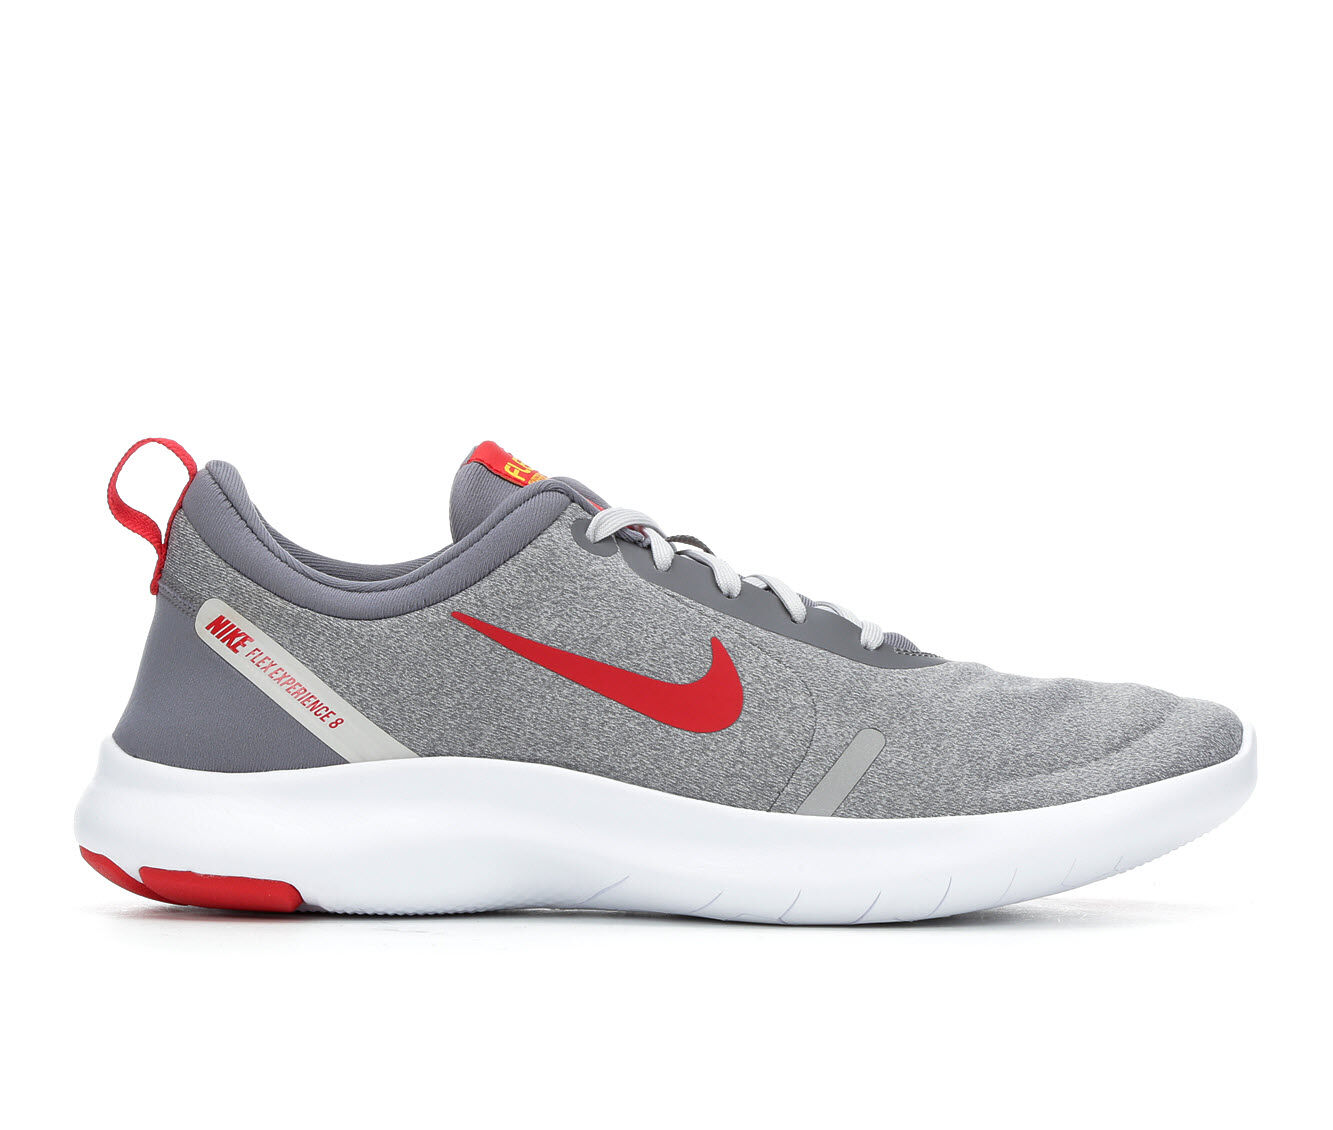 Best Selling Men's Nike Flex Experience Rn 8 Running Shoes Gry/Wht/Red